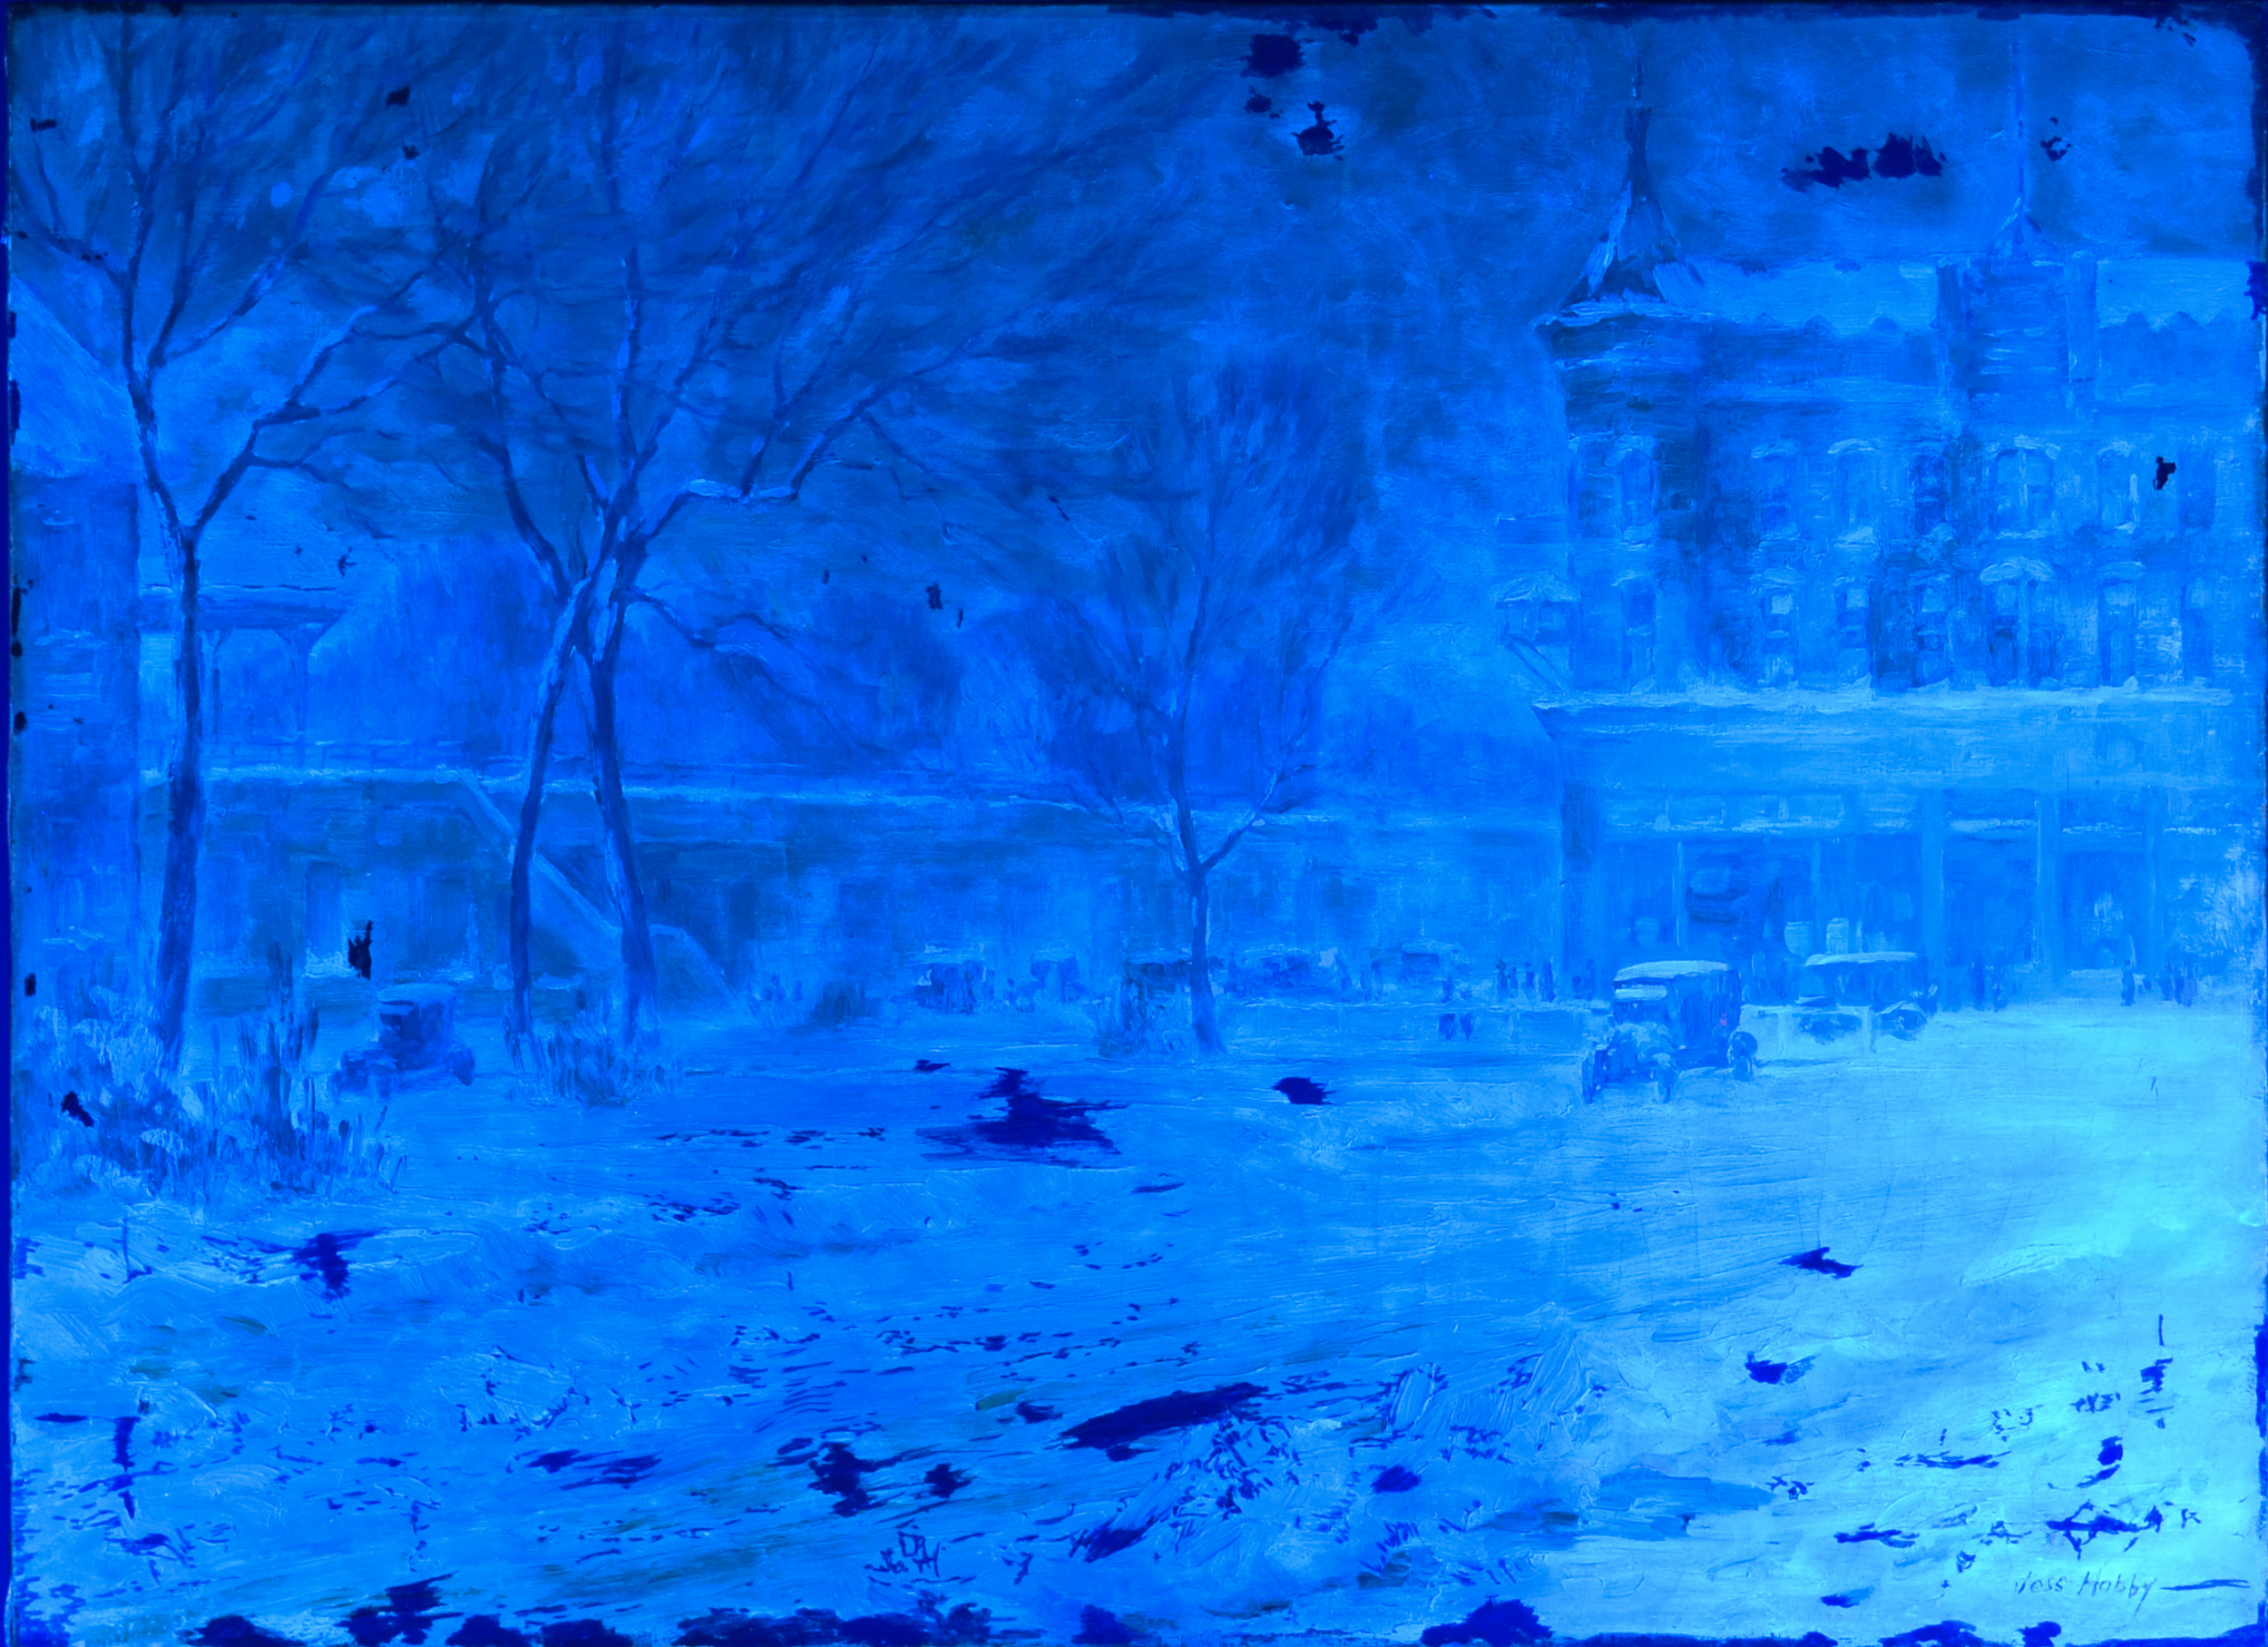 Invisible to the naked eye, examination of the painting under blacklight will reveal the work preformed by conservator Amber Smith.